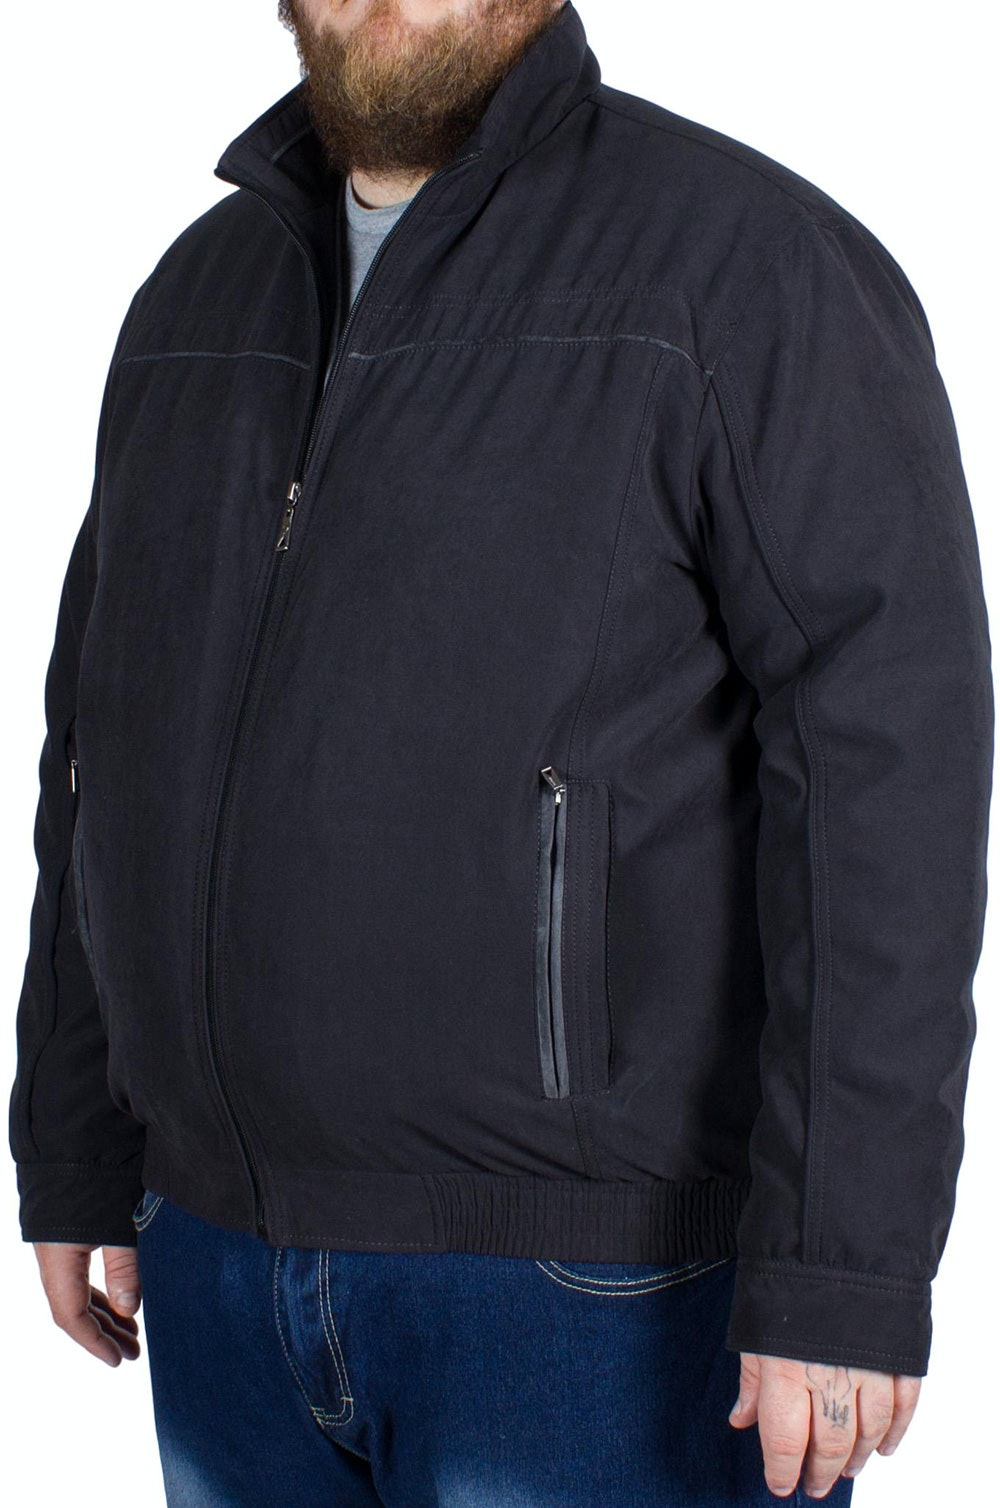 Saxon Mull Jacket Black